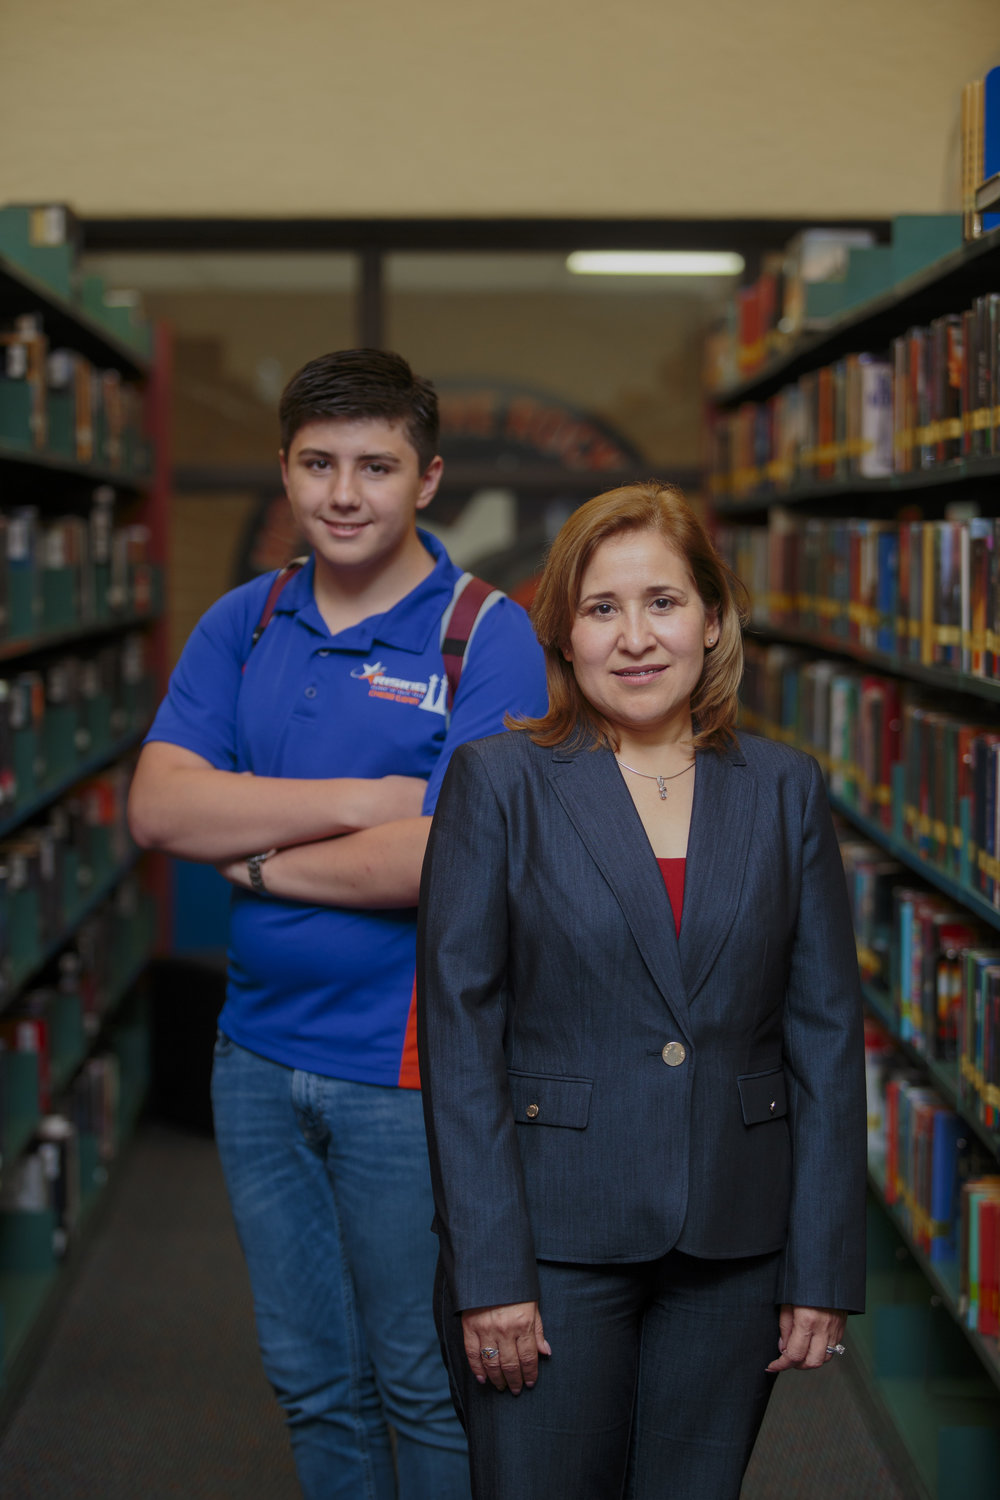 Oralia De Los Reyes, Ph.D.- STISD Partner | Raul Marquez- 8th-grader at RSA